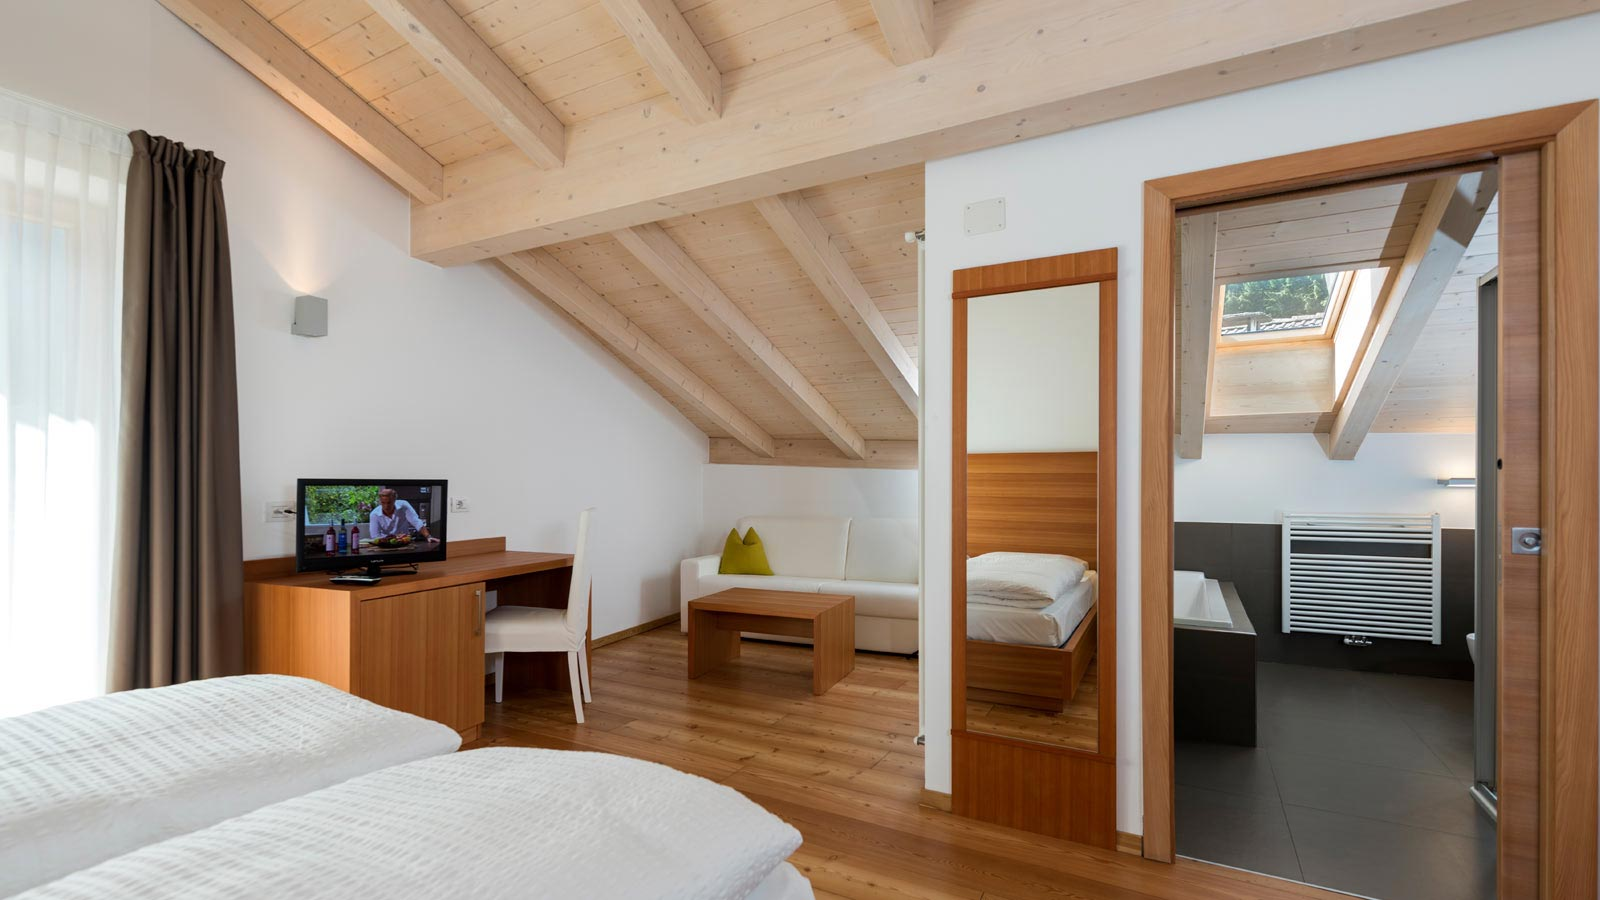 A double room at Garnì International with sofa corner, bathroom and exposed beams